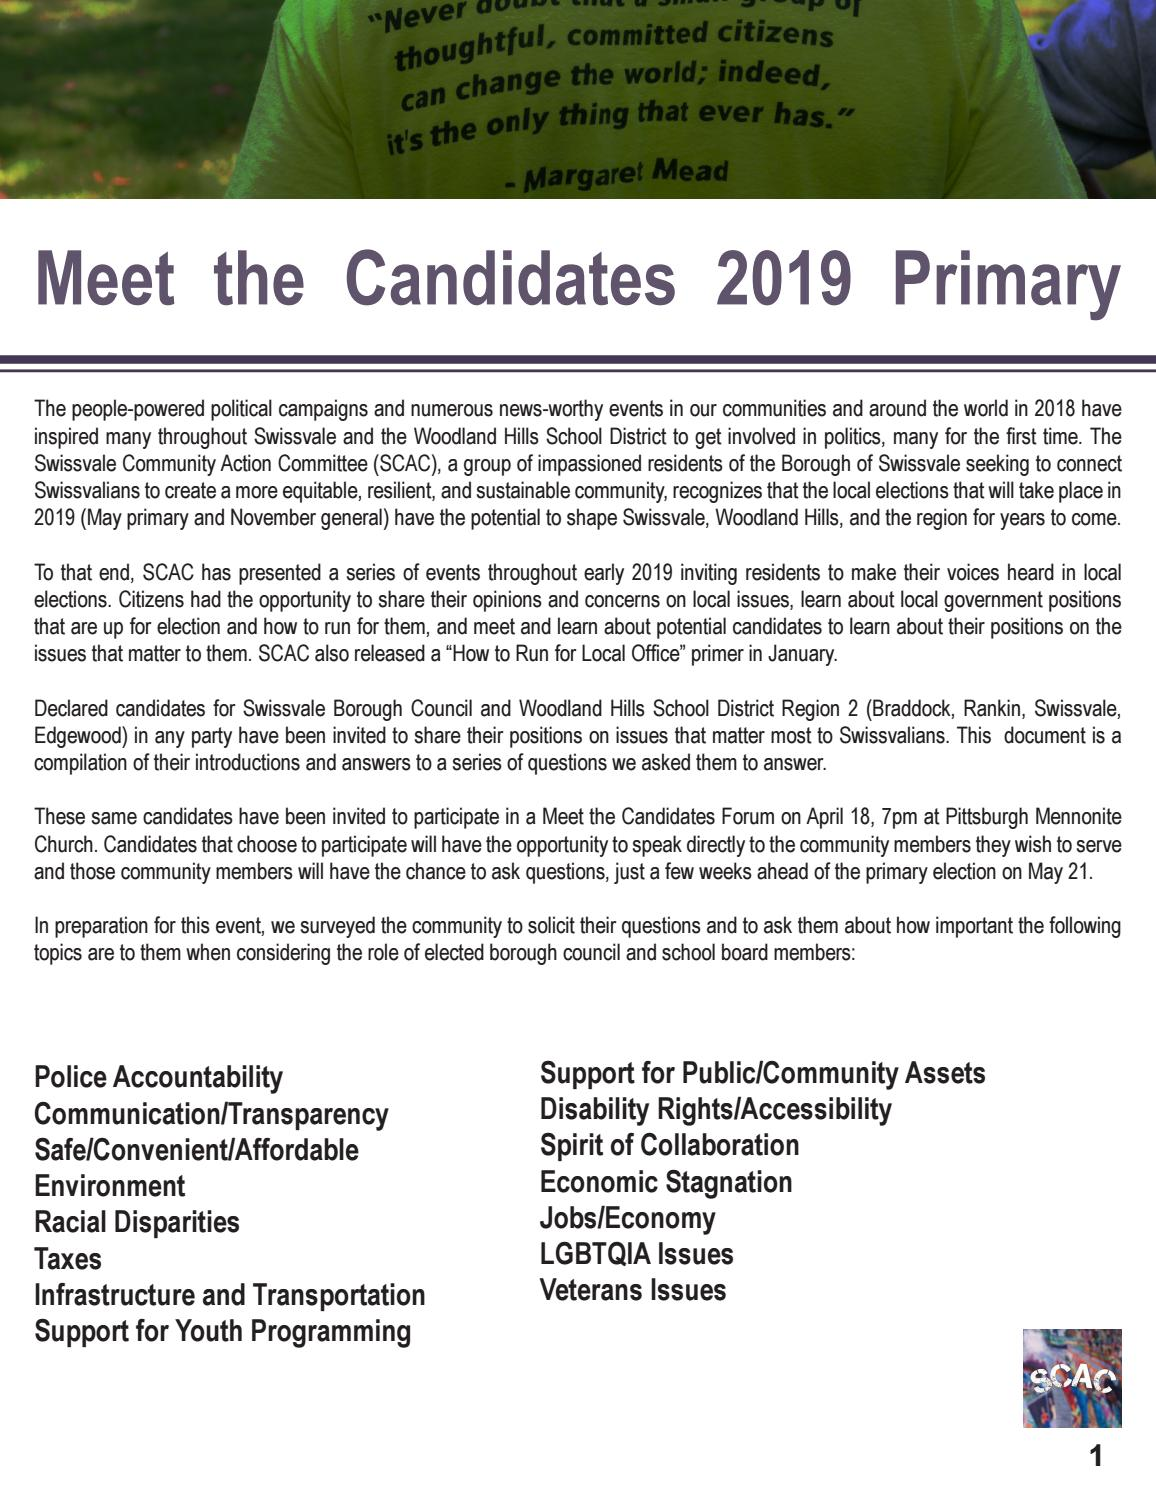 Meet the Candidates 2019 Primary by Porter Loves - issuu